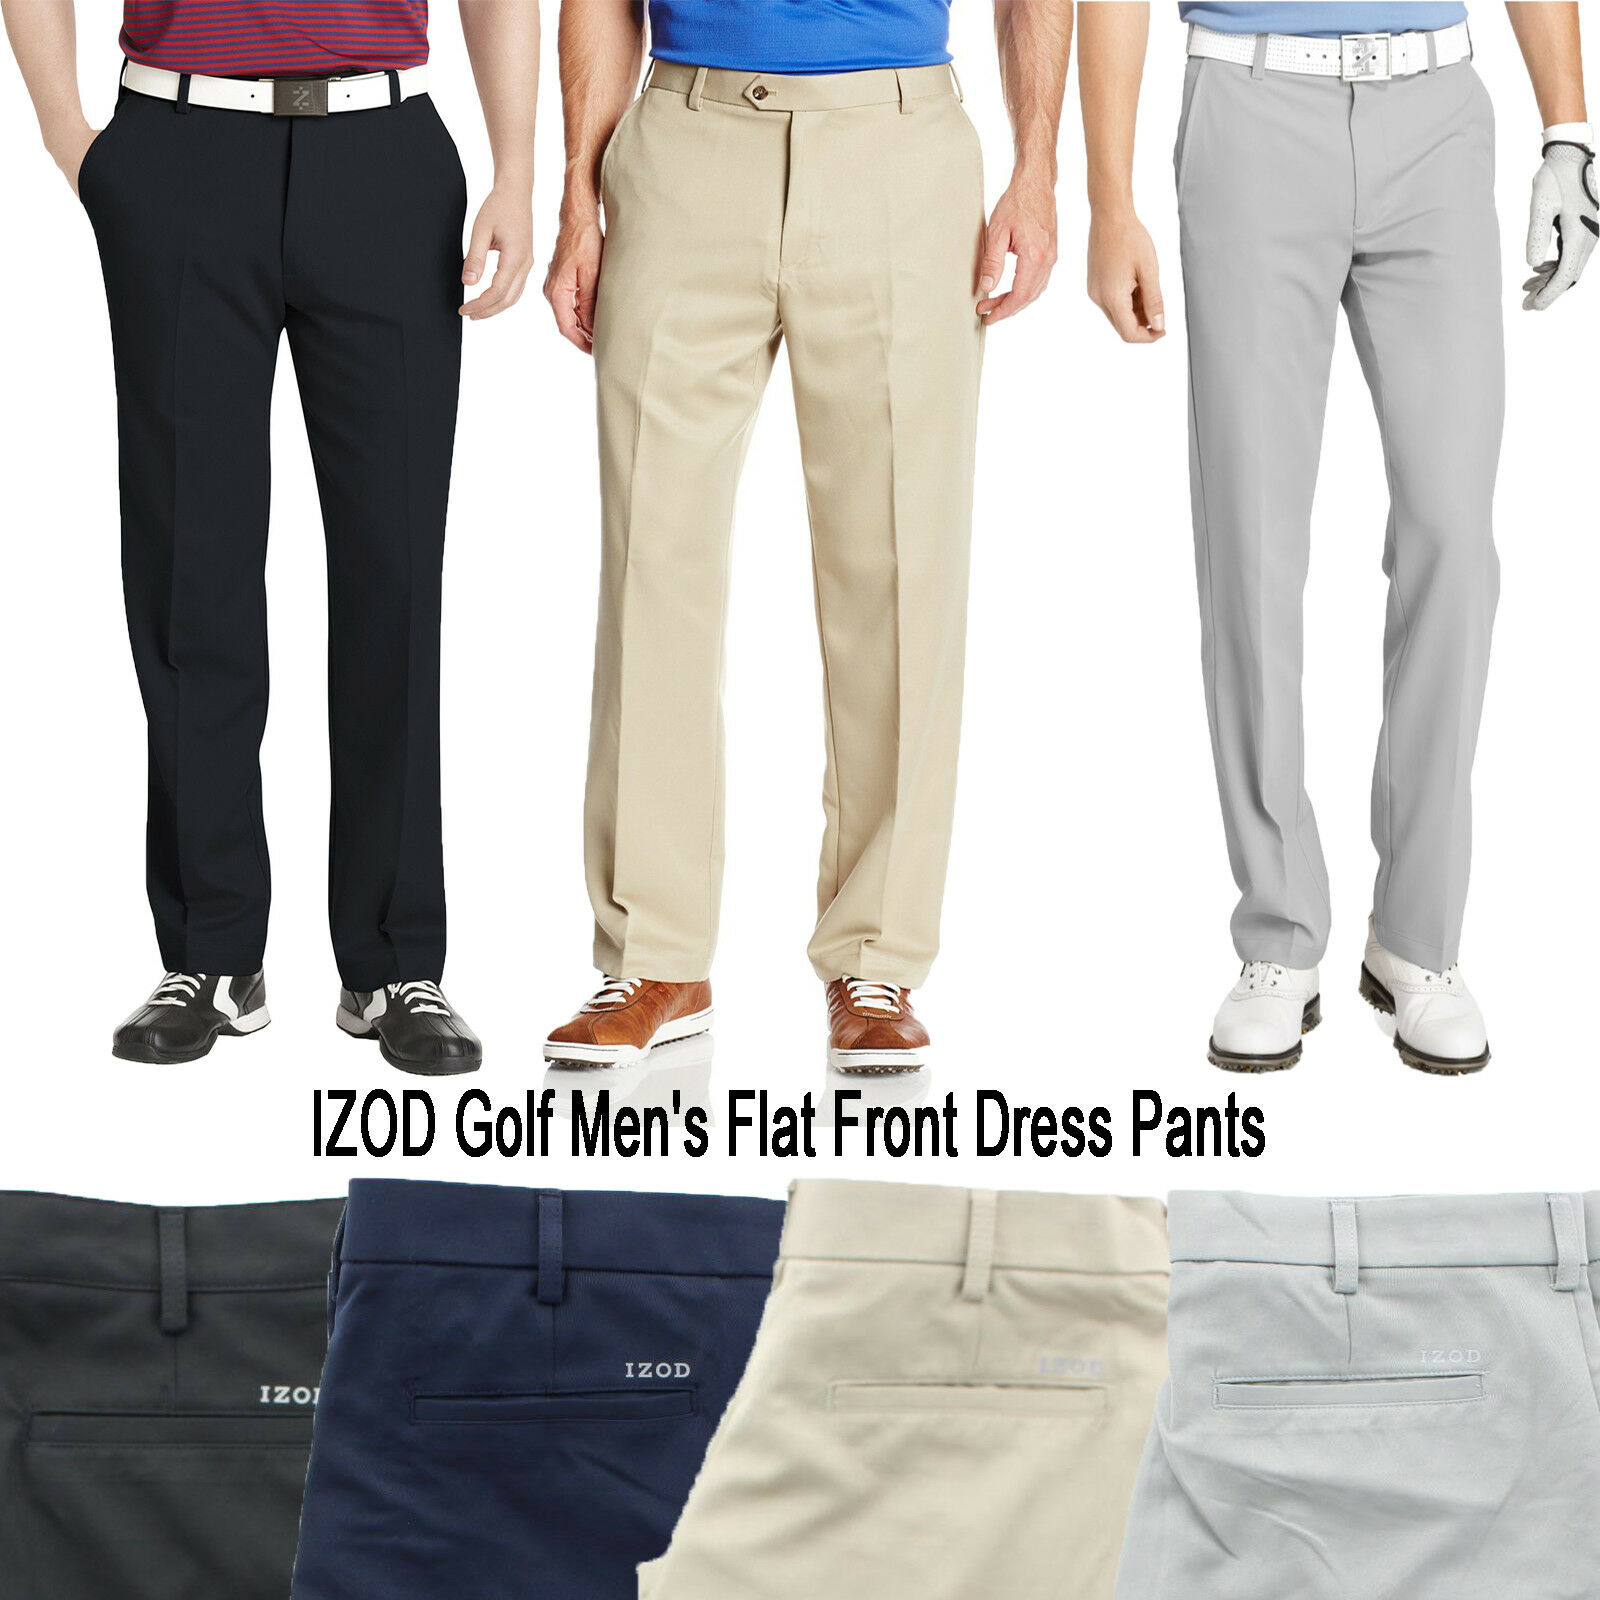 IZOD Men's Golf Performance Flat Front Classic Stretch Dress